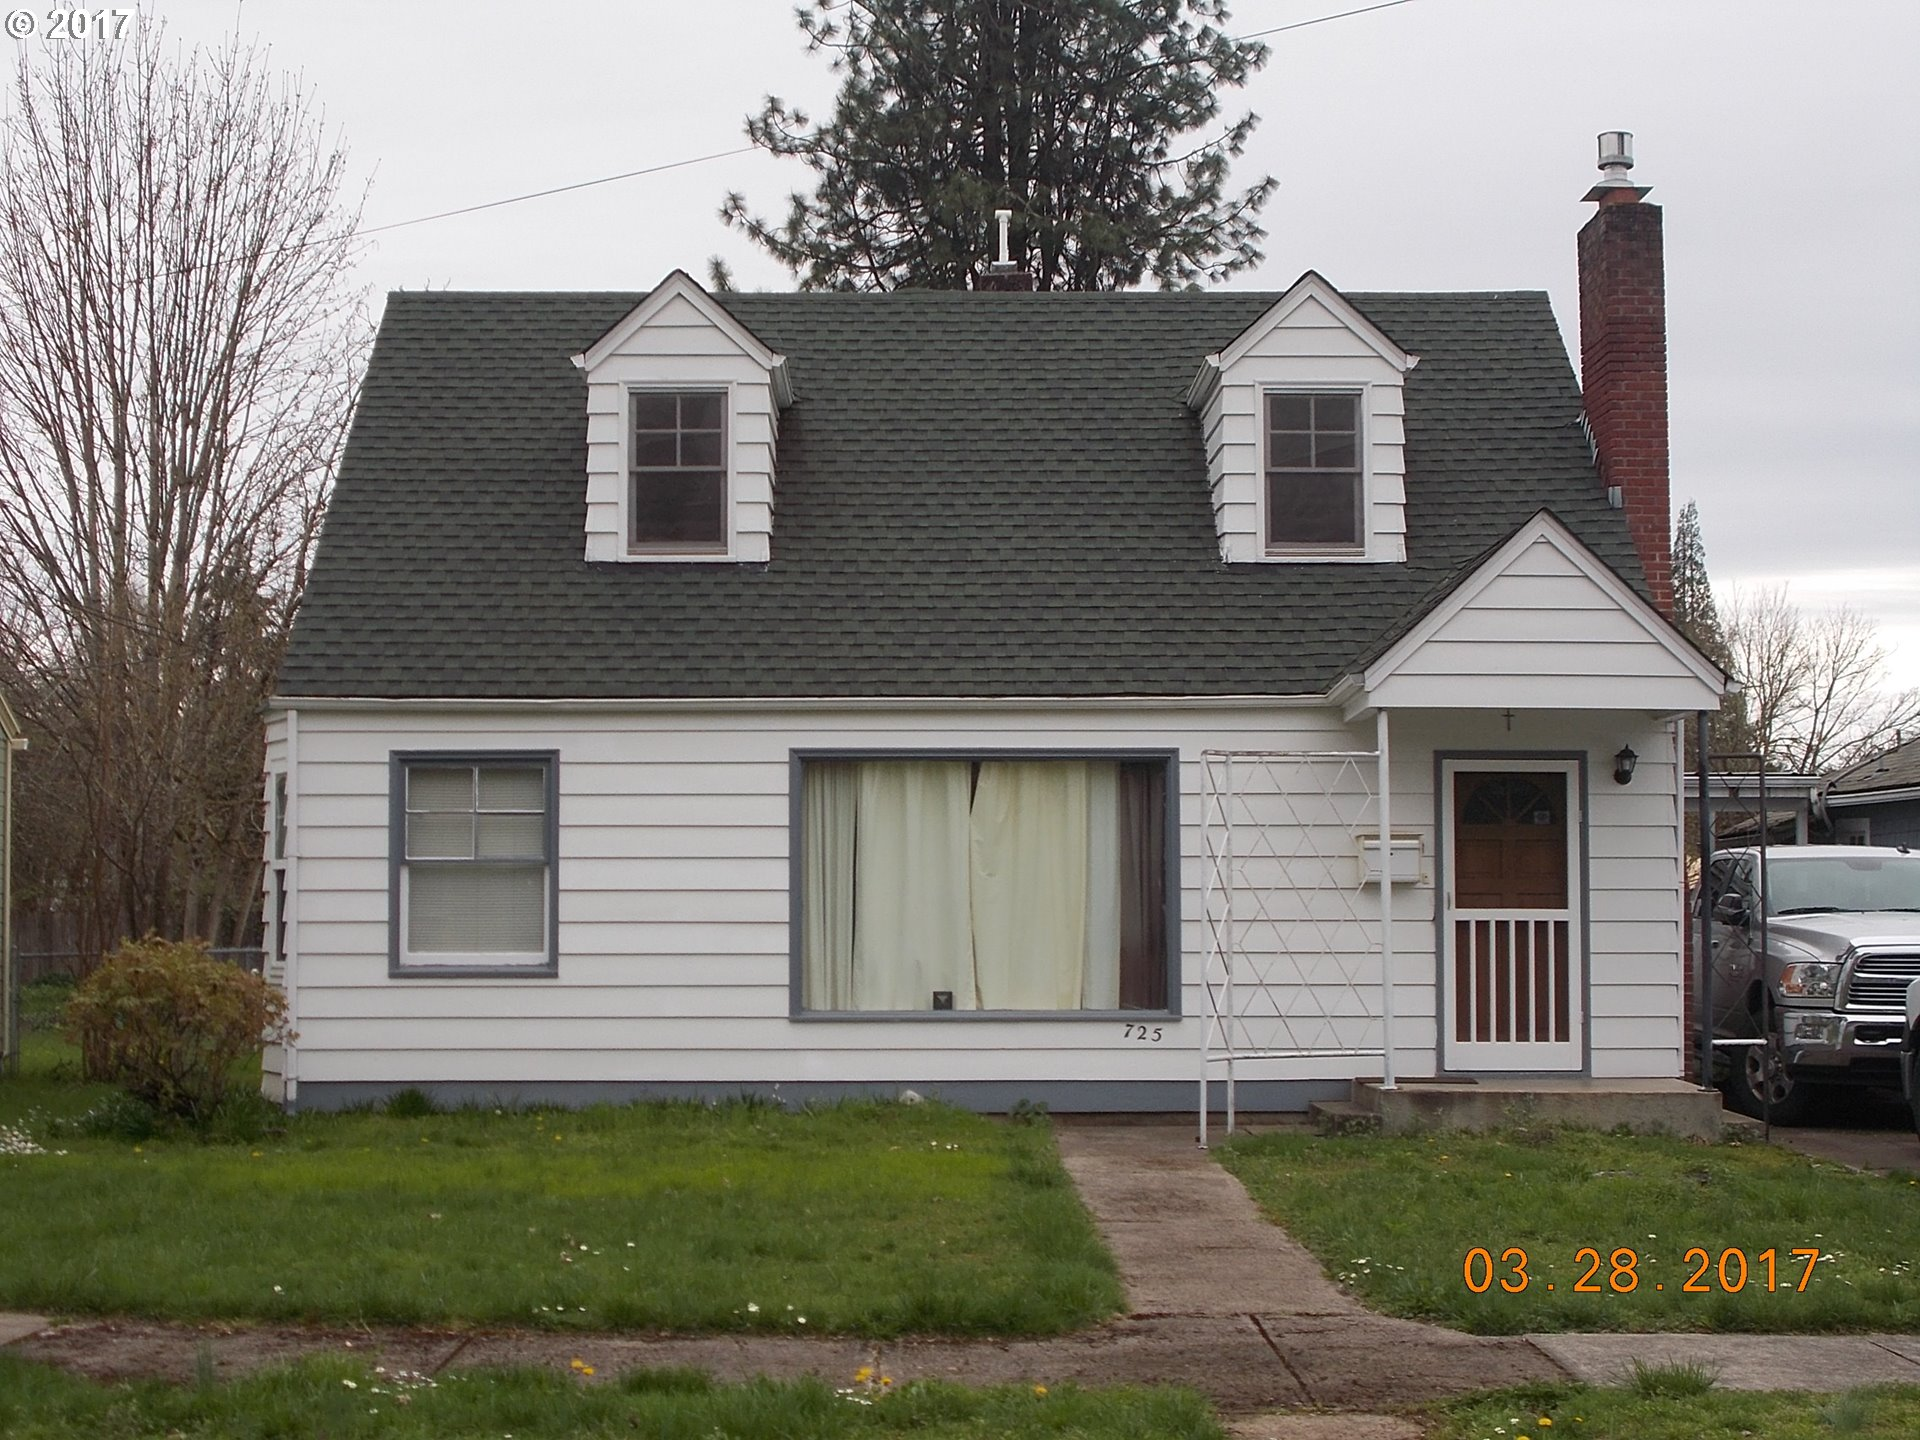 725 S 2ND ST, Cottage Grove, OR 97424